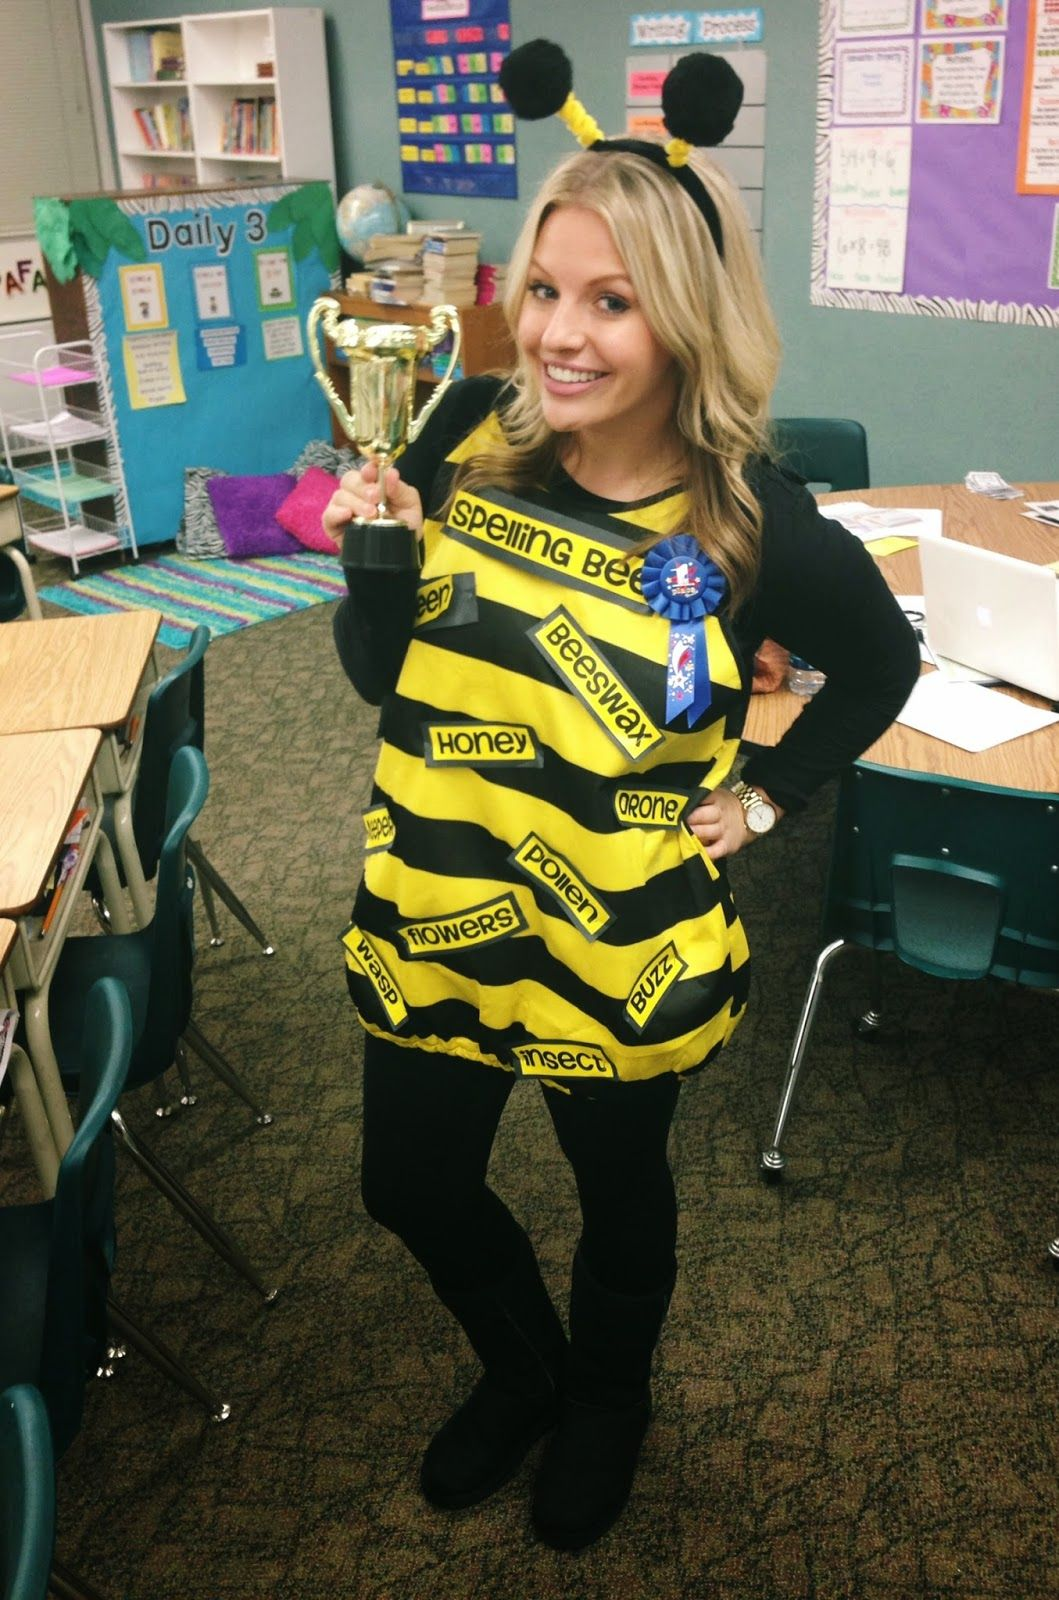 Teacher Costume Spelling Bee Champion